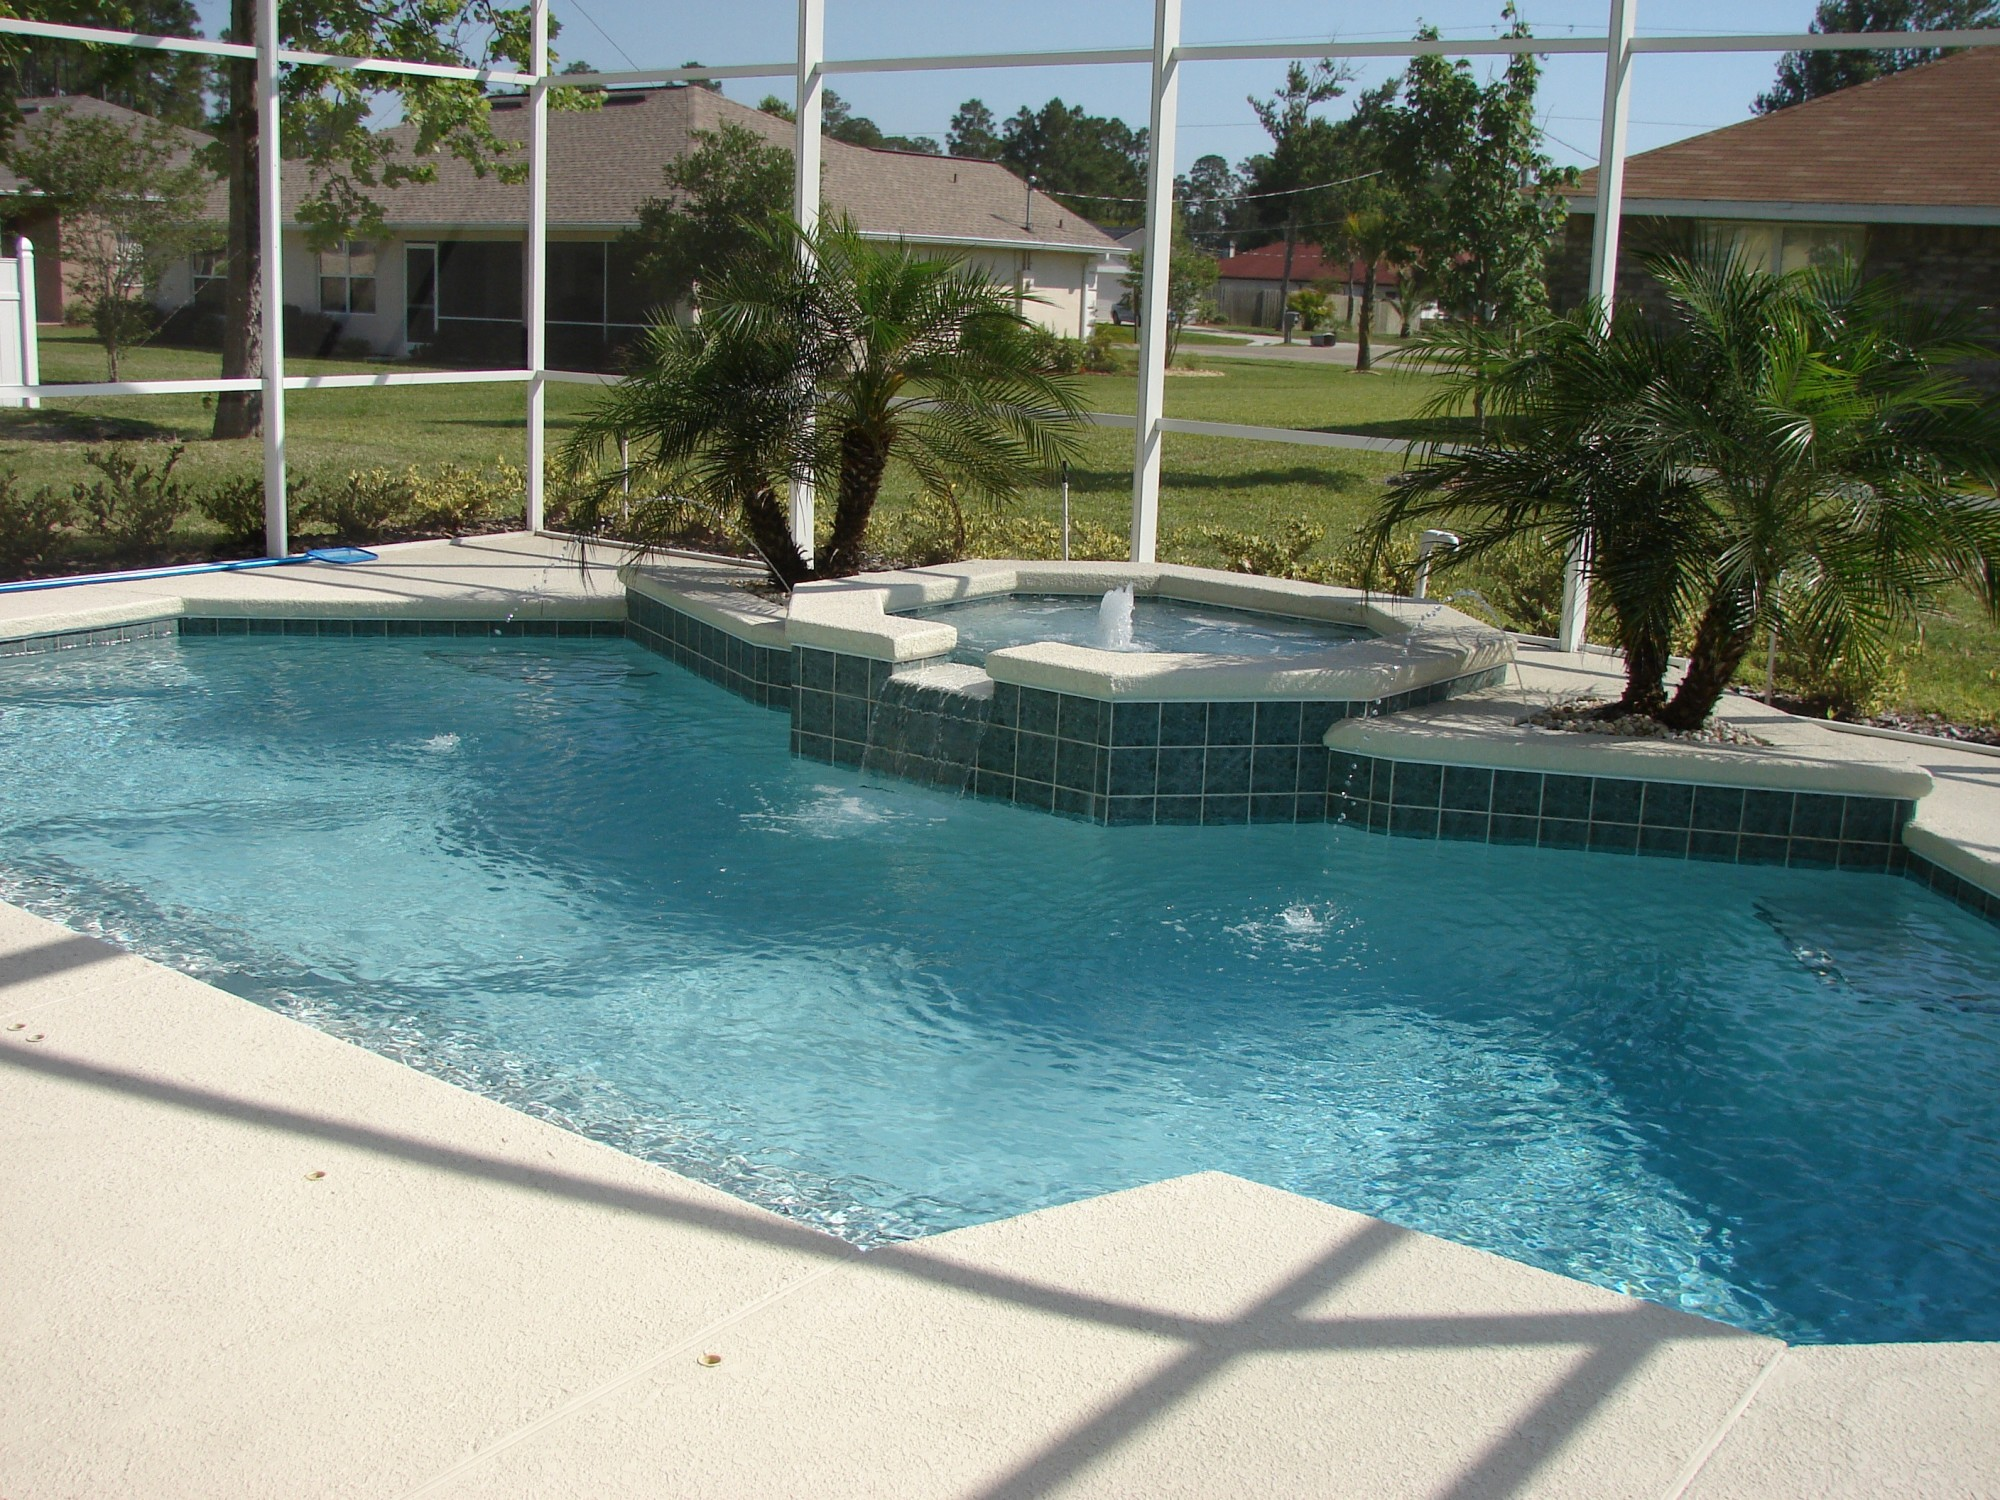 8 Awesome Benefits of Concrete Pool Decks